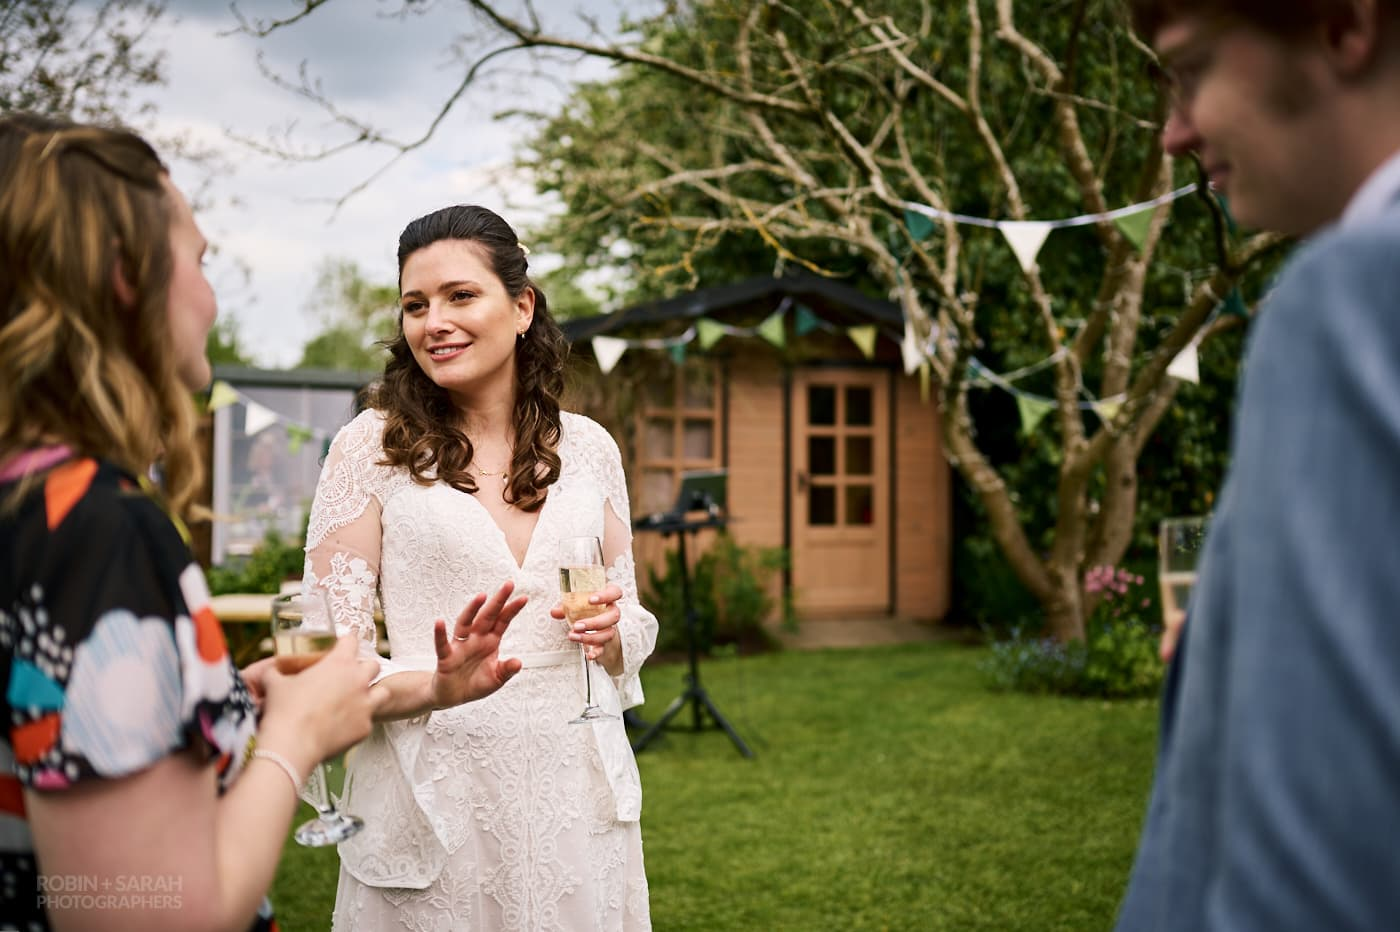 Bride chats with guests at home garden wedding